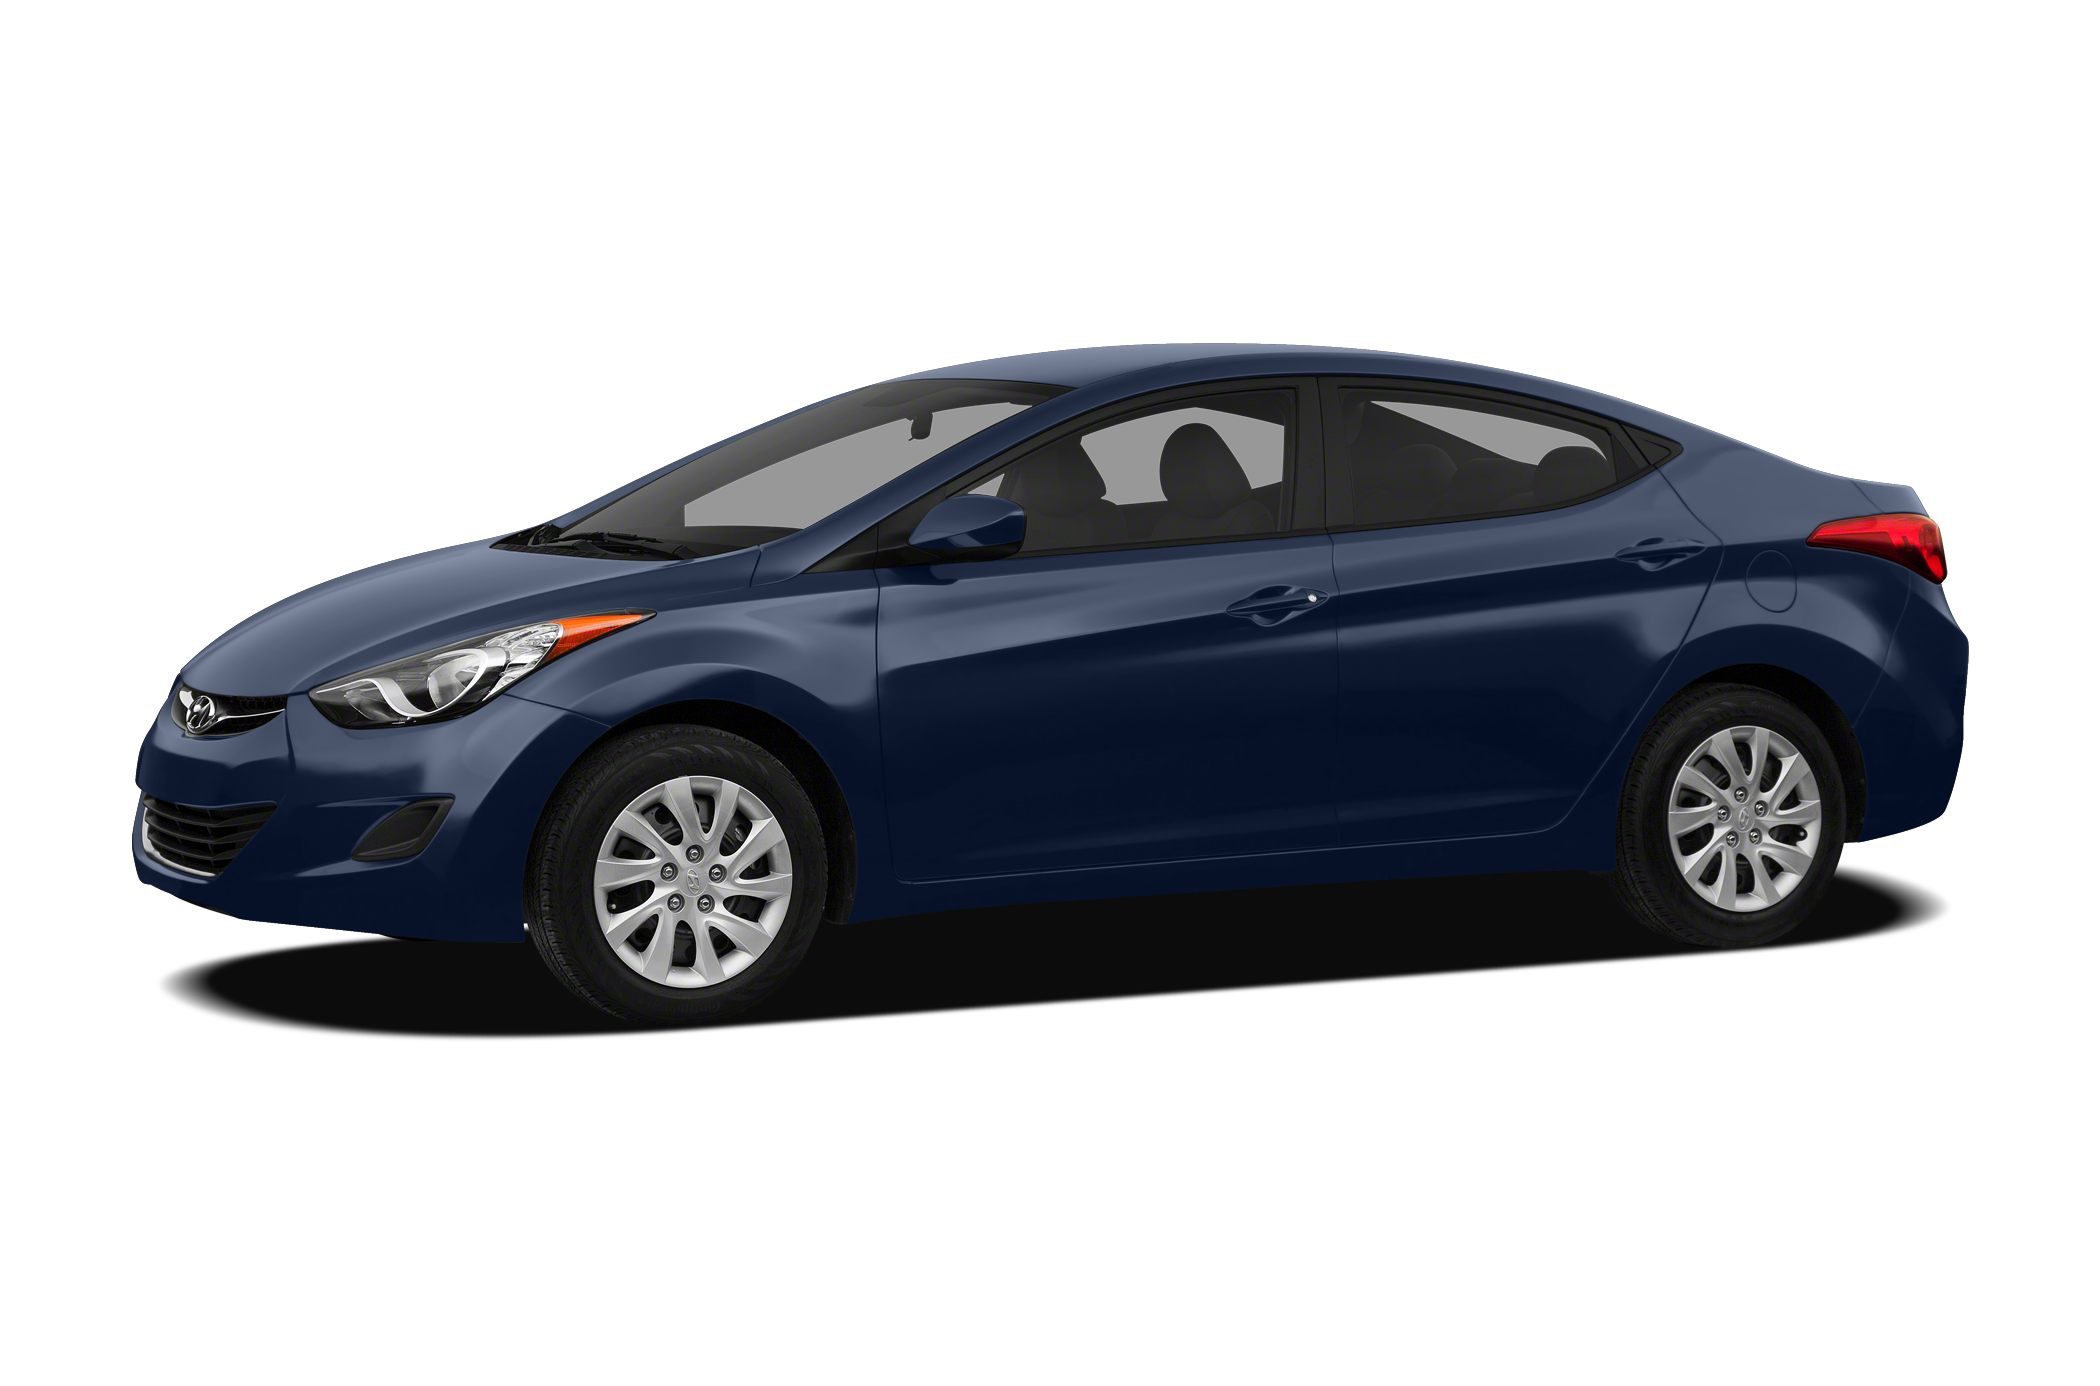 2011 Hyundai Elantra GLS Check out this GREAT DEAL on a 2011 Elantra with the PERFERRED EQUIPMENT